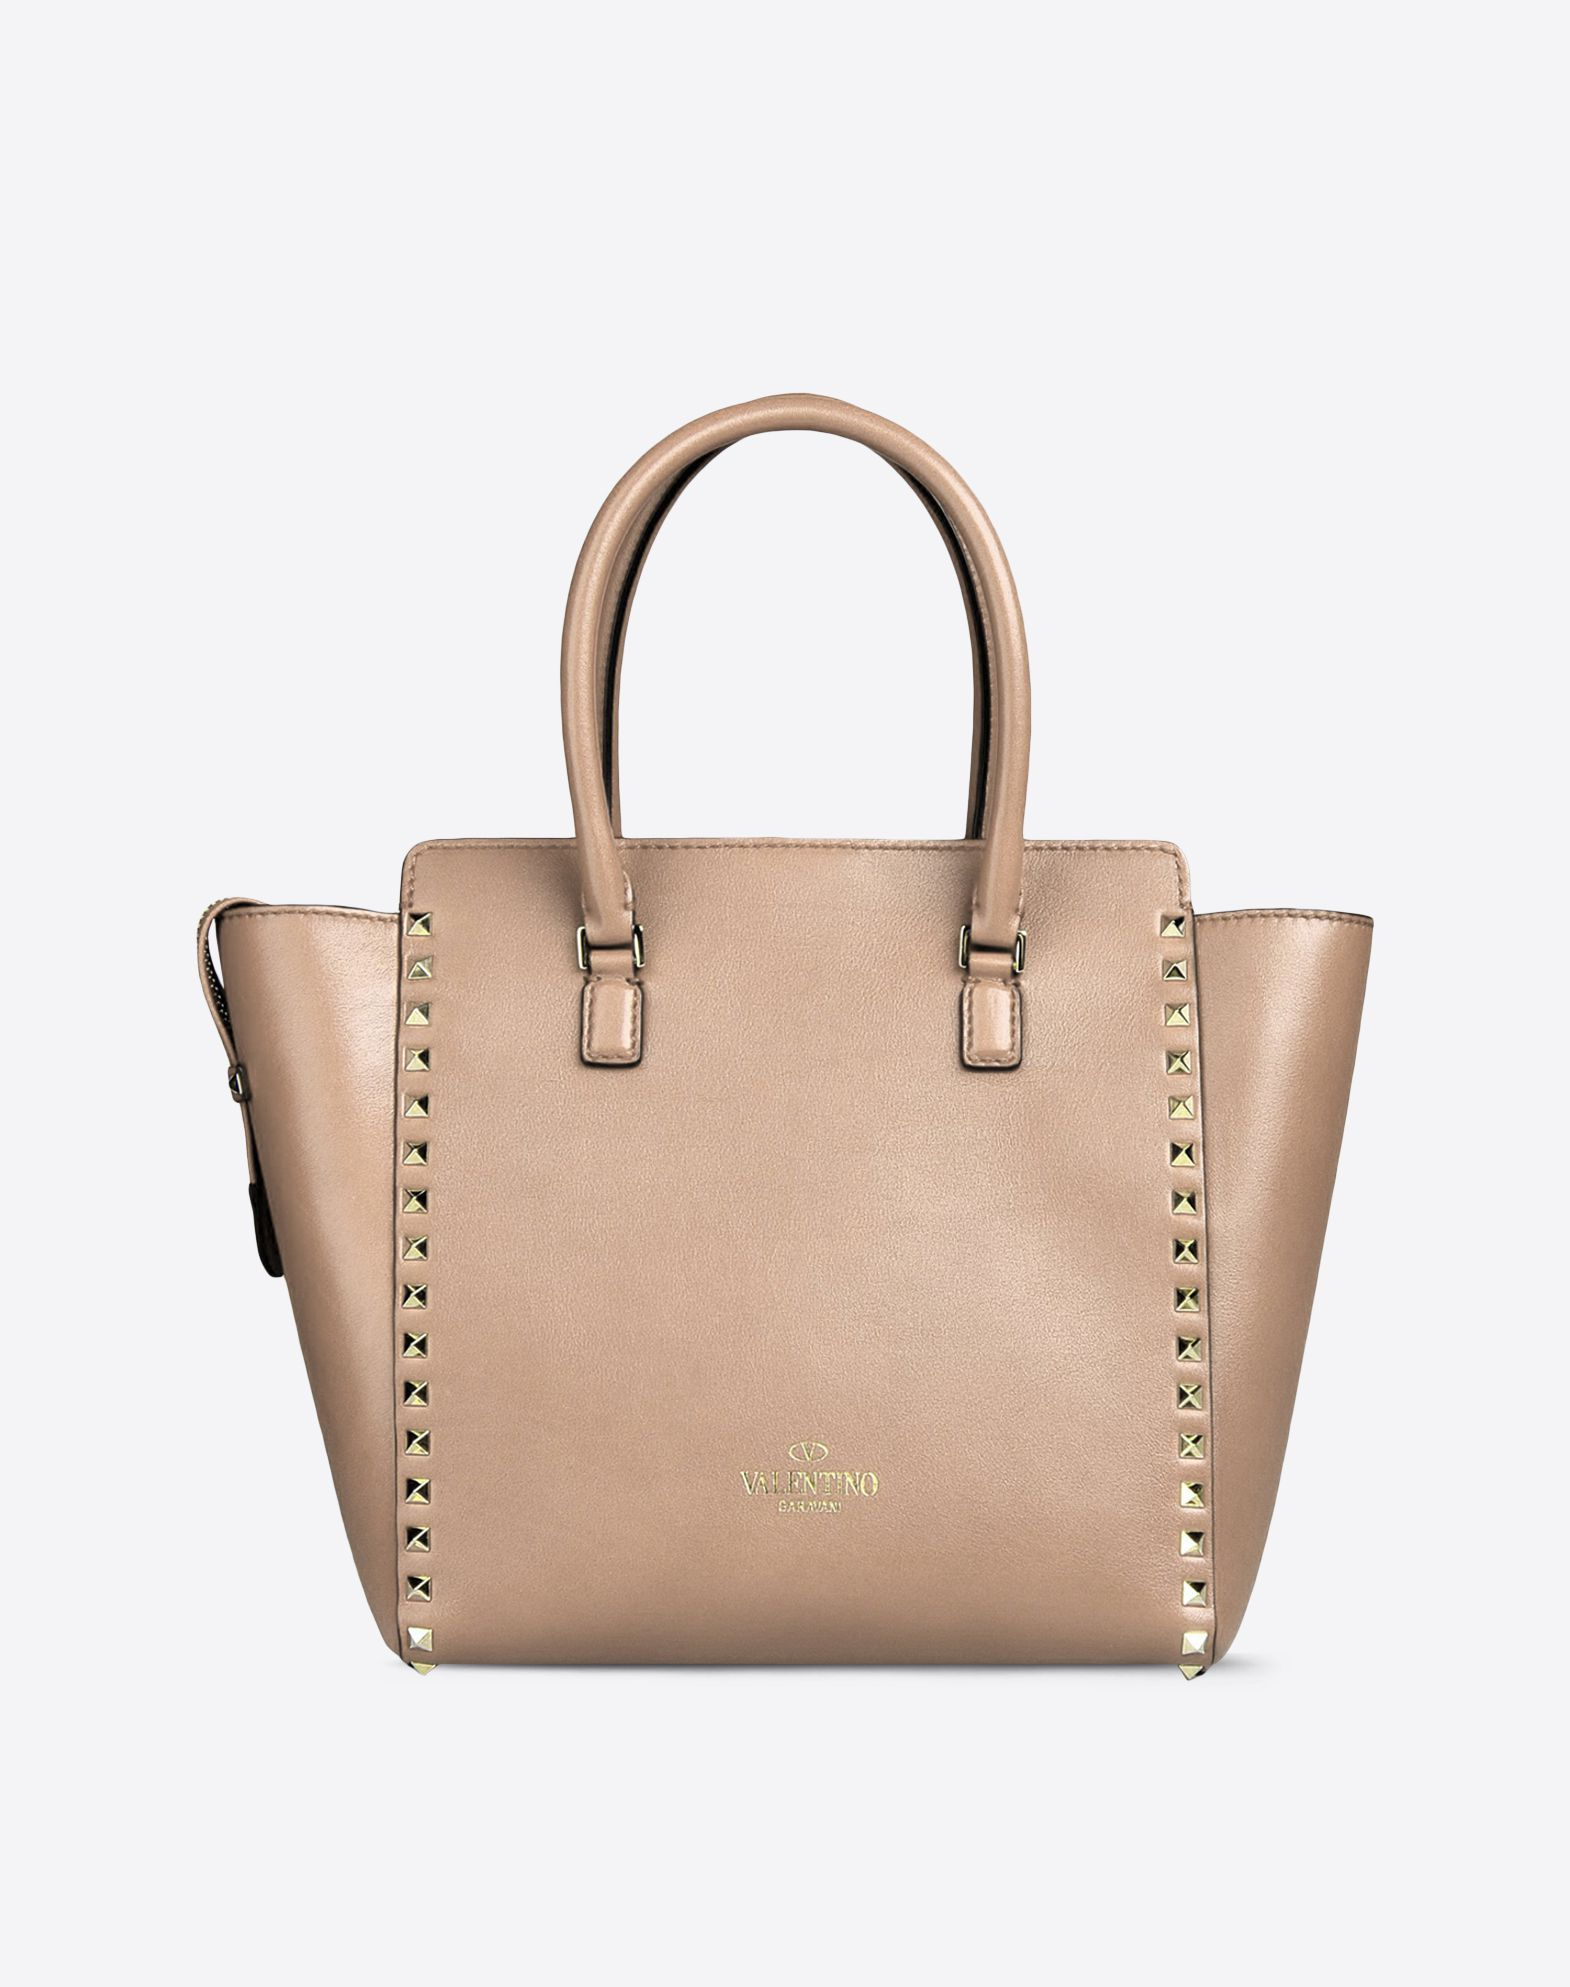 VALENTINO Solid color Framed closure Lined interior Double handle Metallic inserts Logo detail  45208640kk